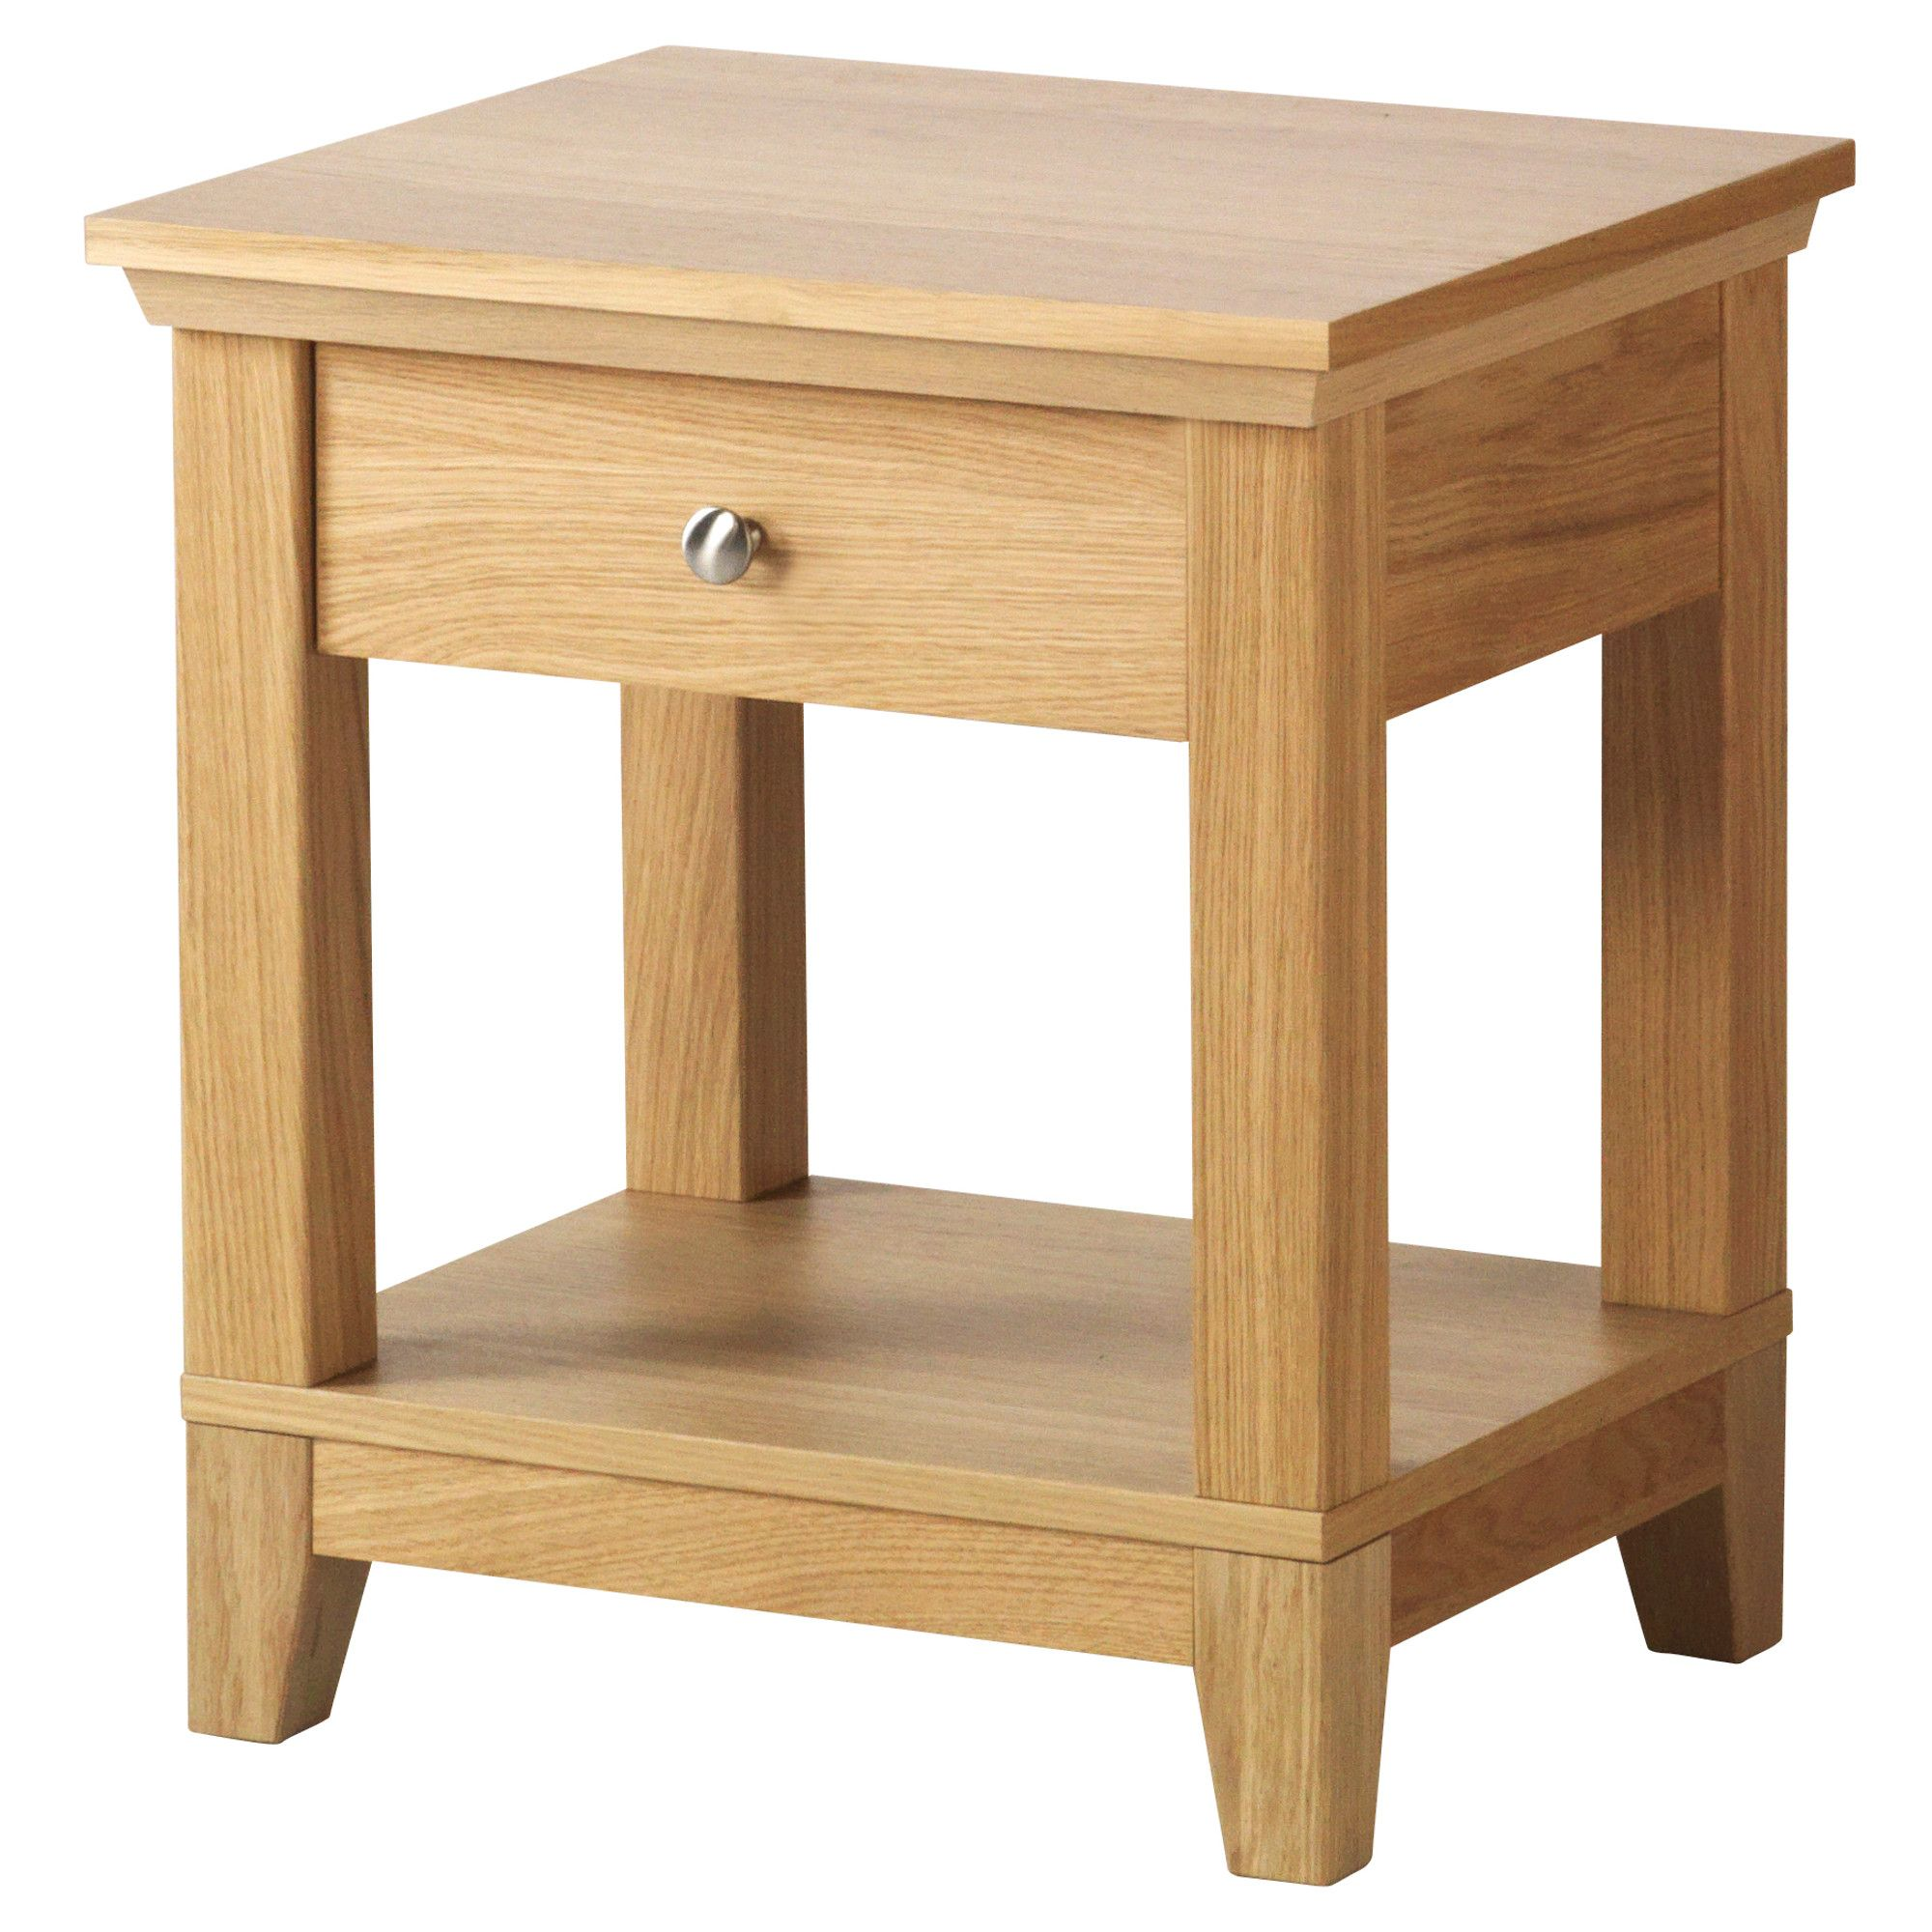 Bedroom table designs - Furniture Herefoss Bedside Table Oak Drawers Modern Furniture